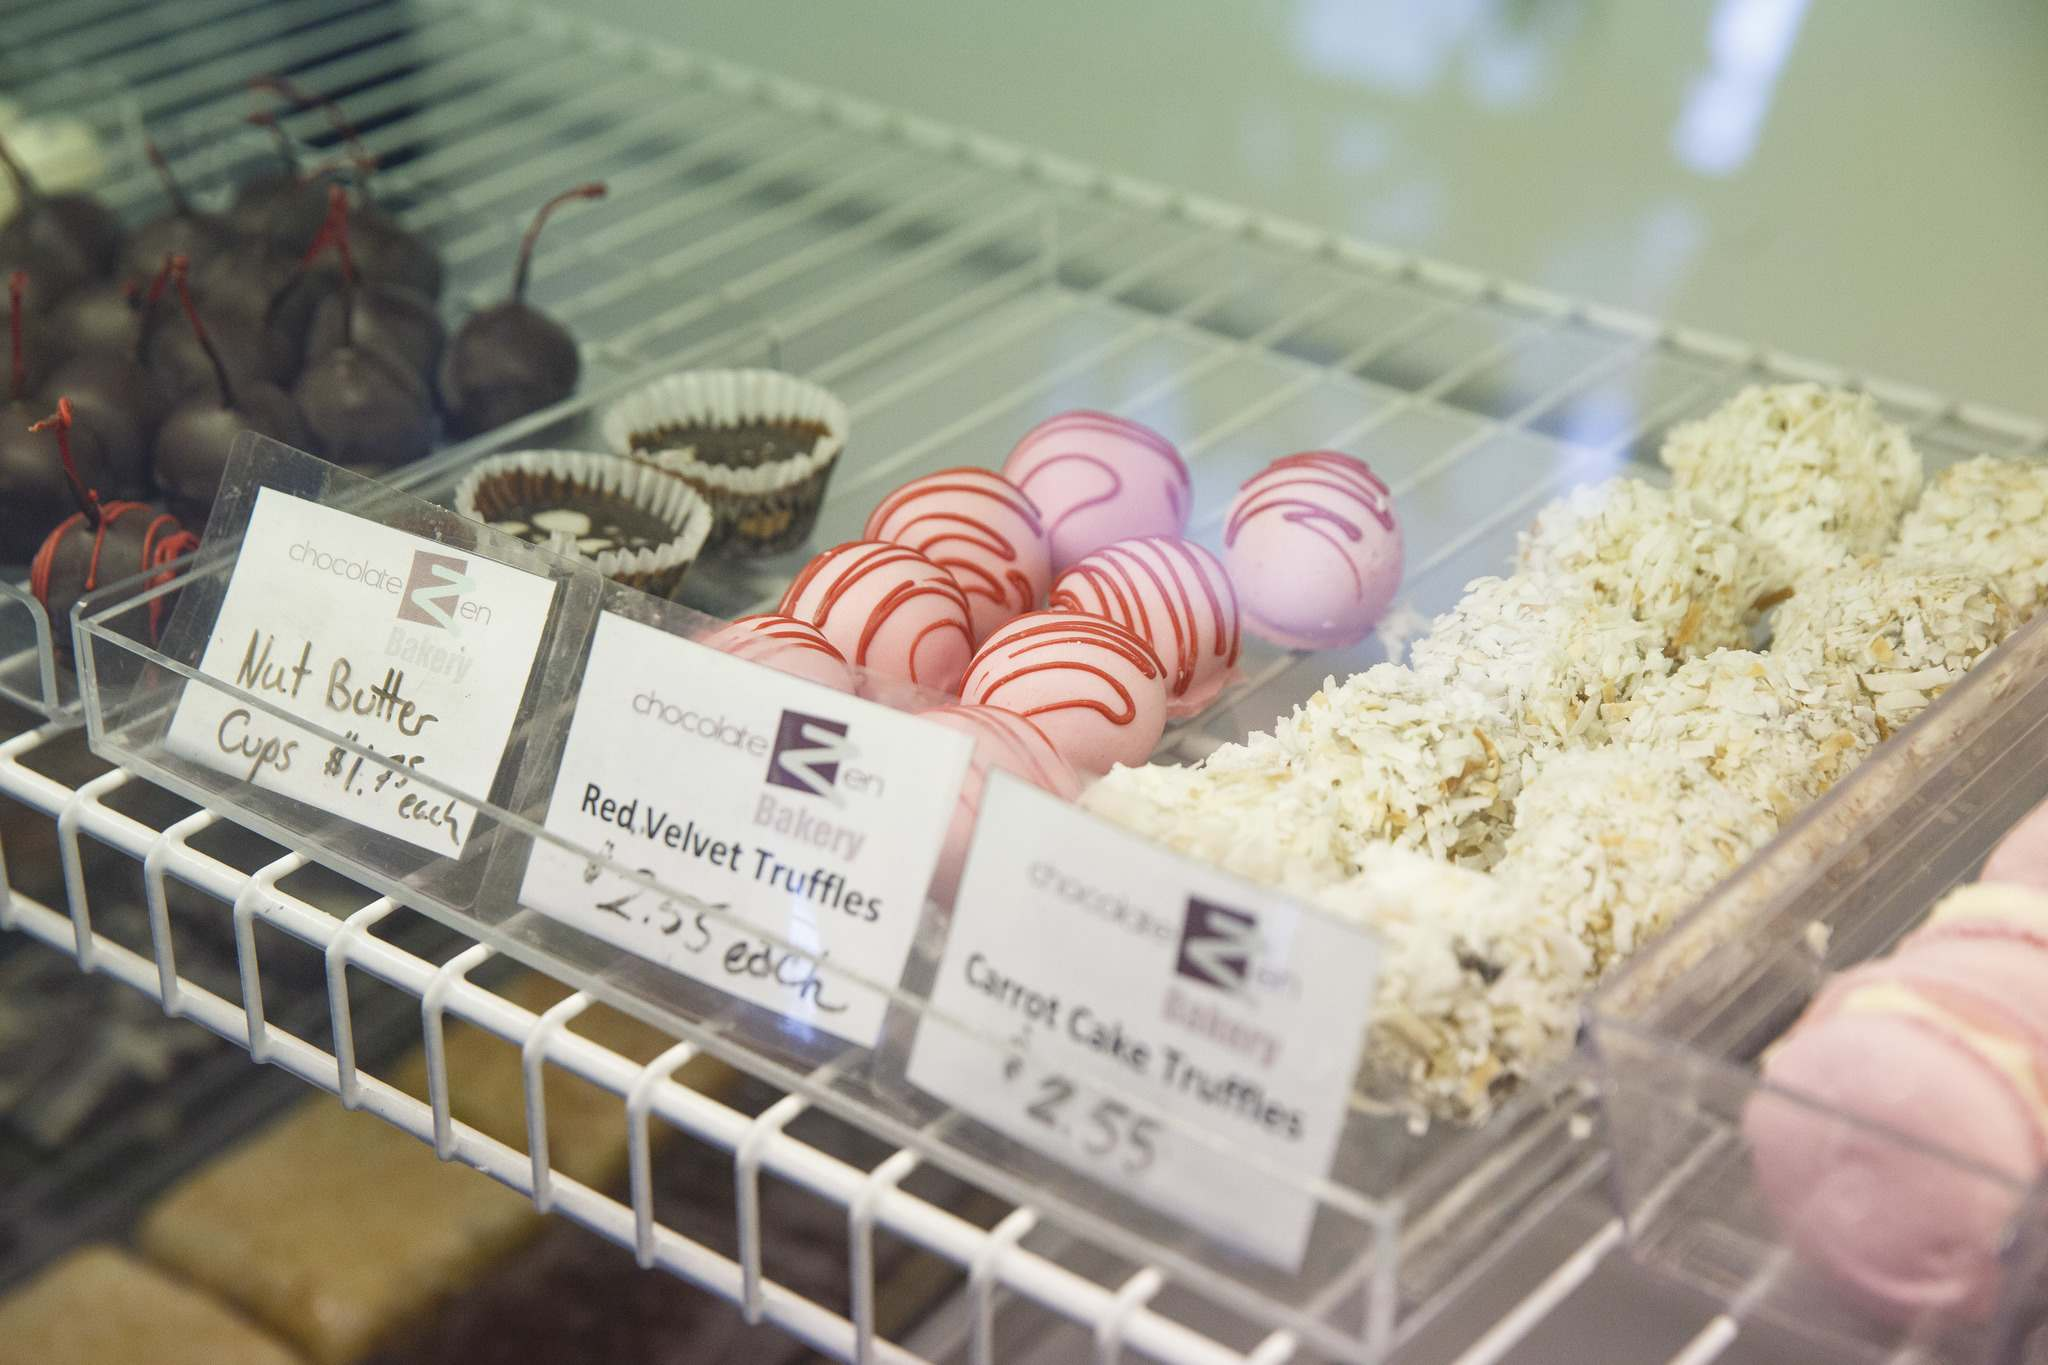 Some of the items in the display case. (Mike Deal / Winnipeg Free Press)</p>